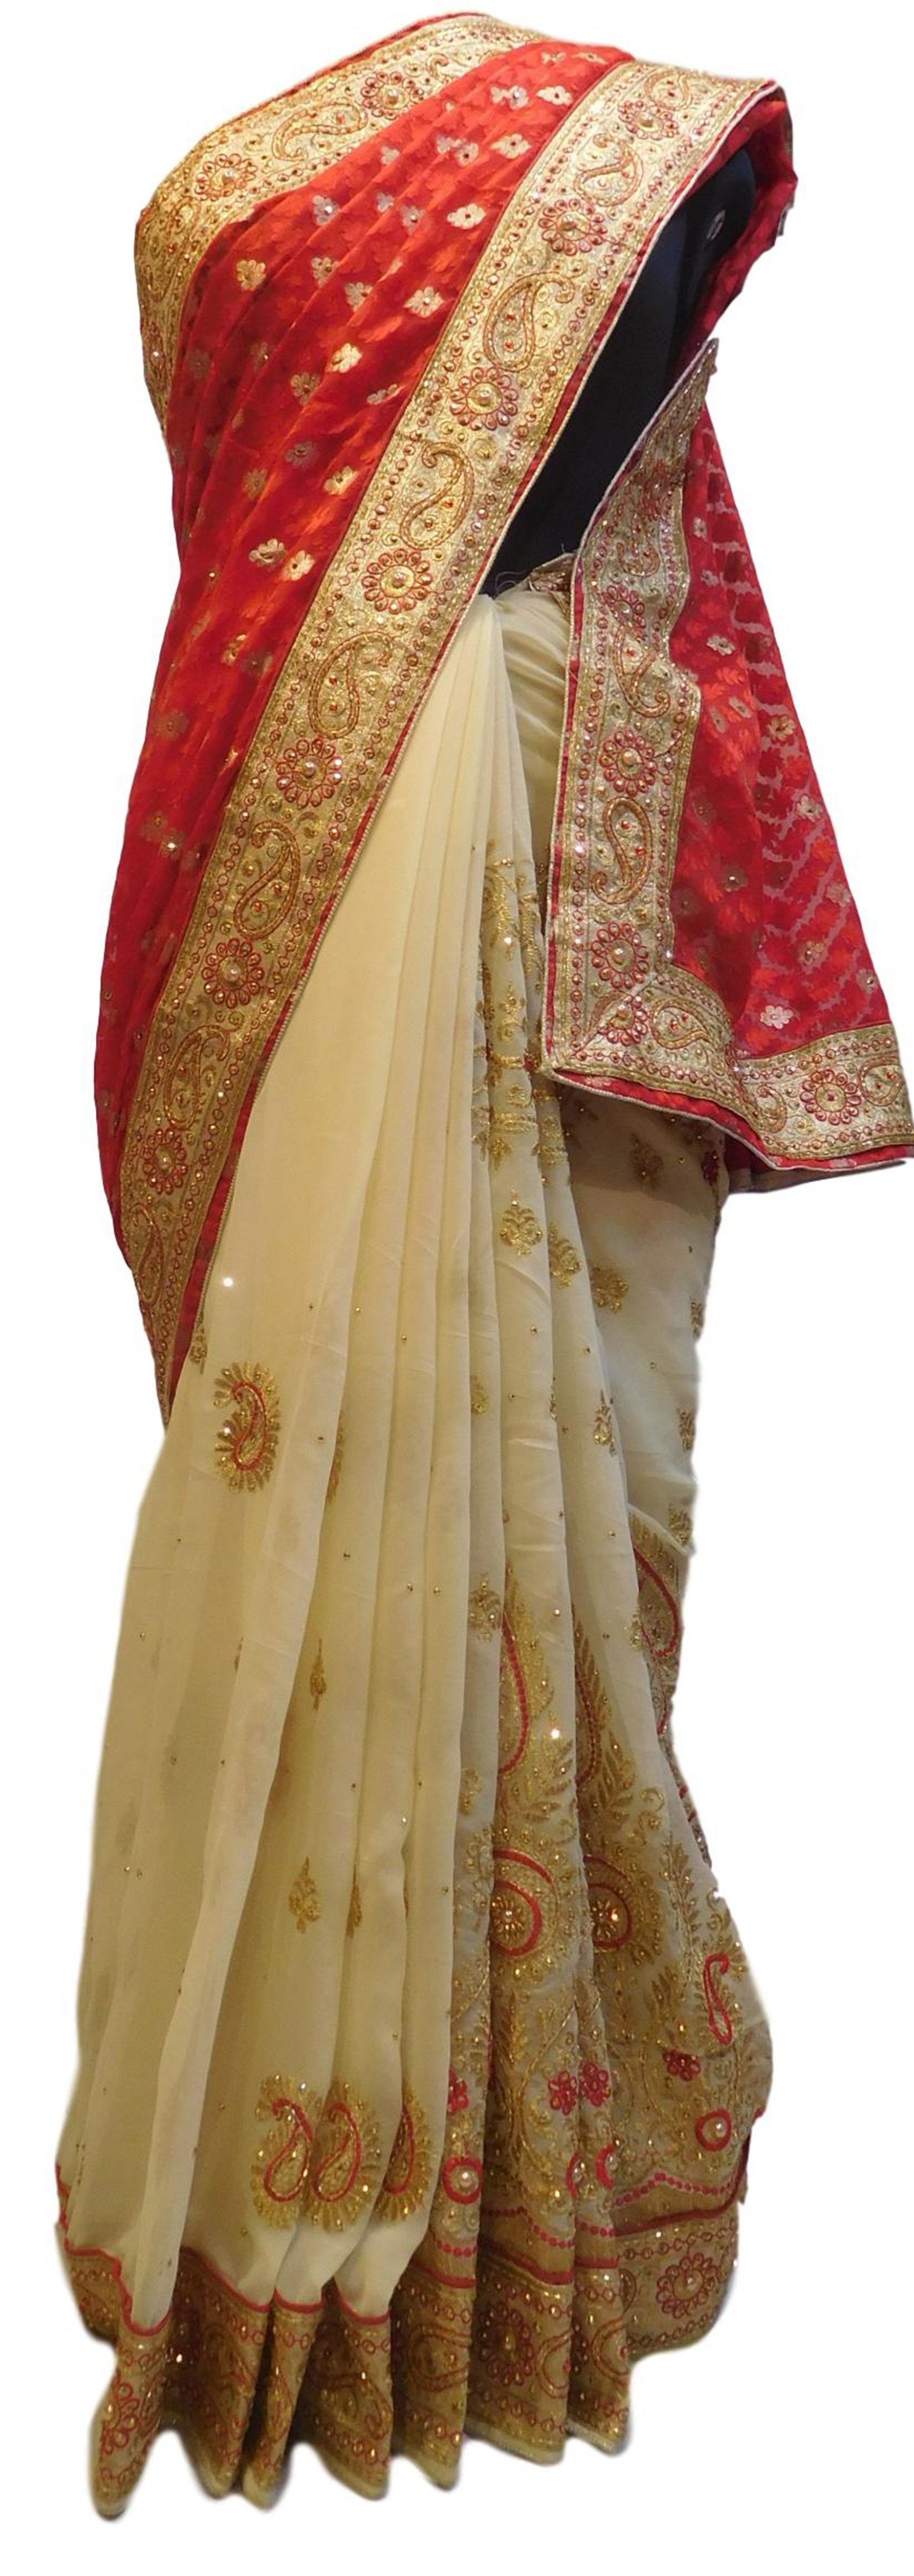 Red & Cream Designer PartyWear Brasso & Georgette Cutdana Pearl Thread Zari Stone Work Saree Sari